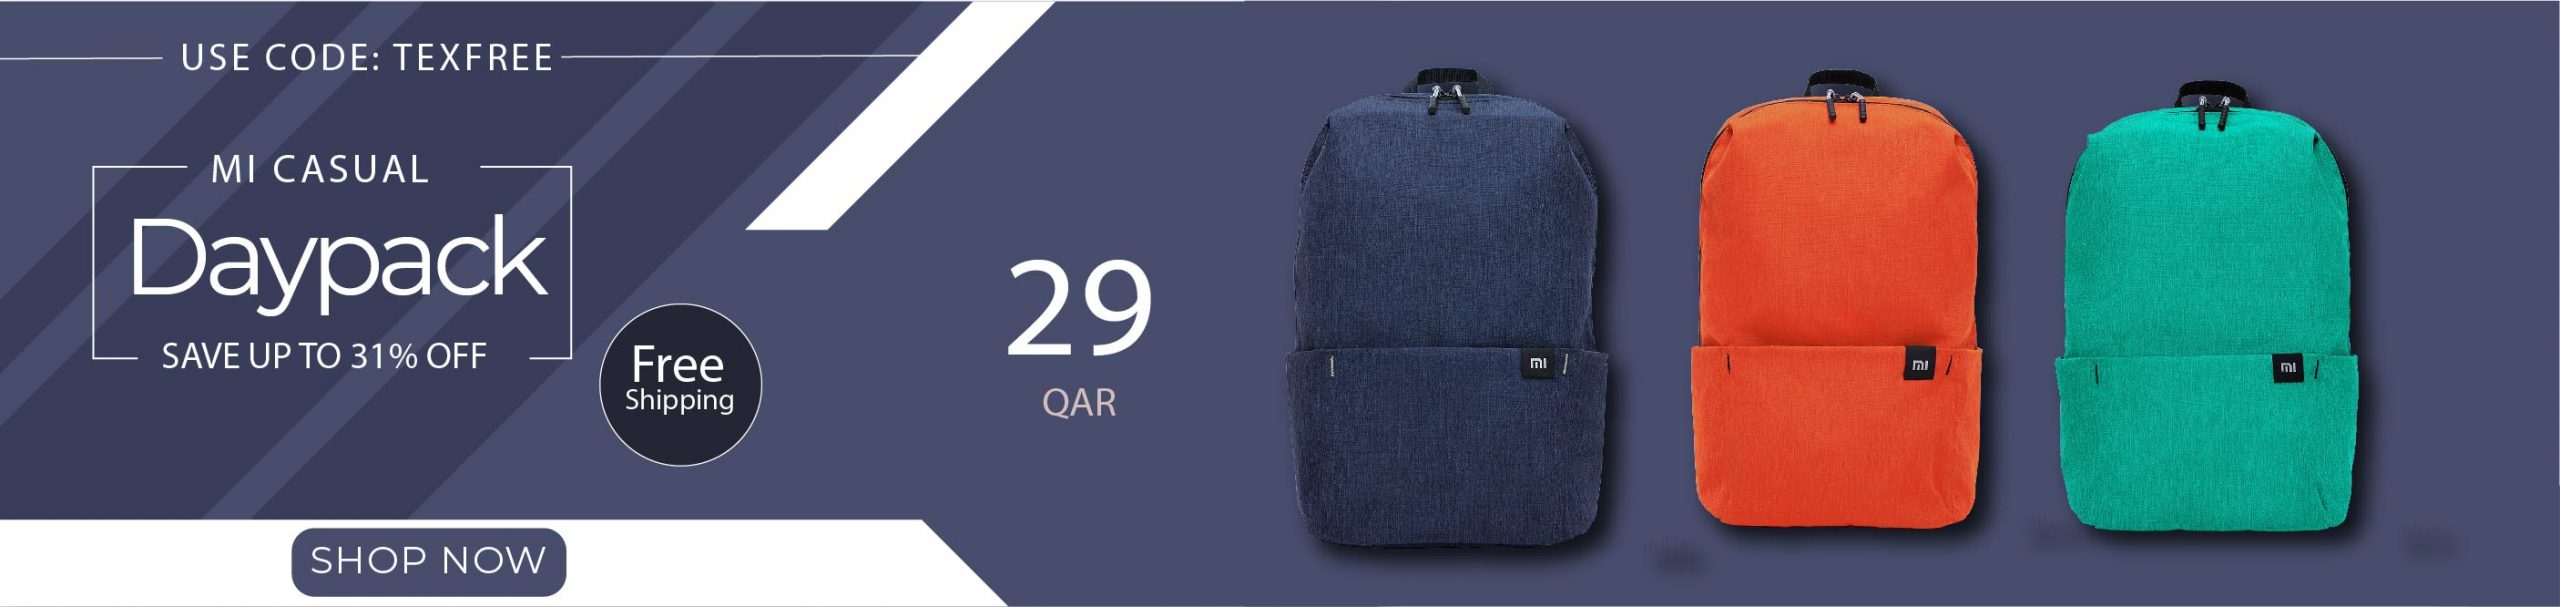 Mi Casual Bag in Qatar-02